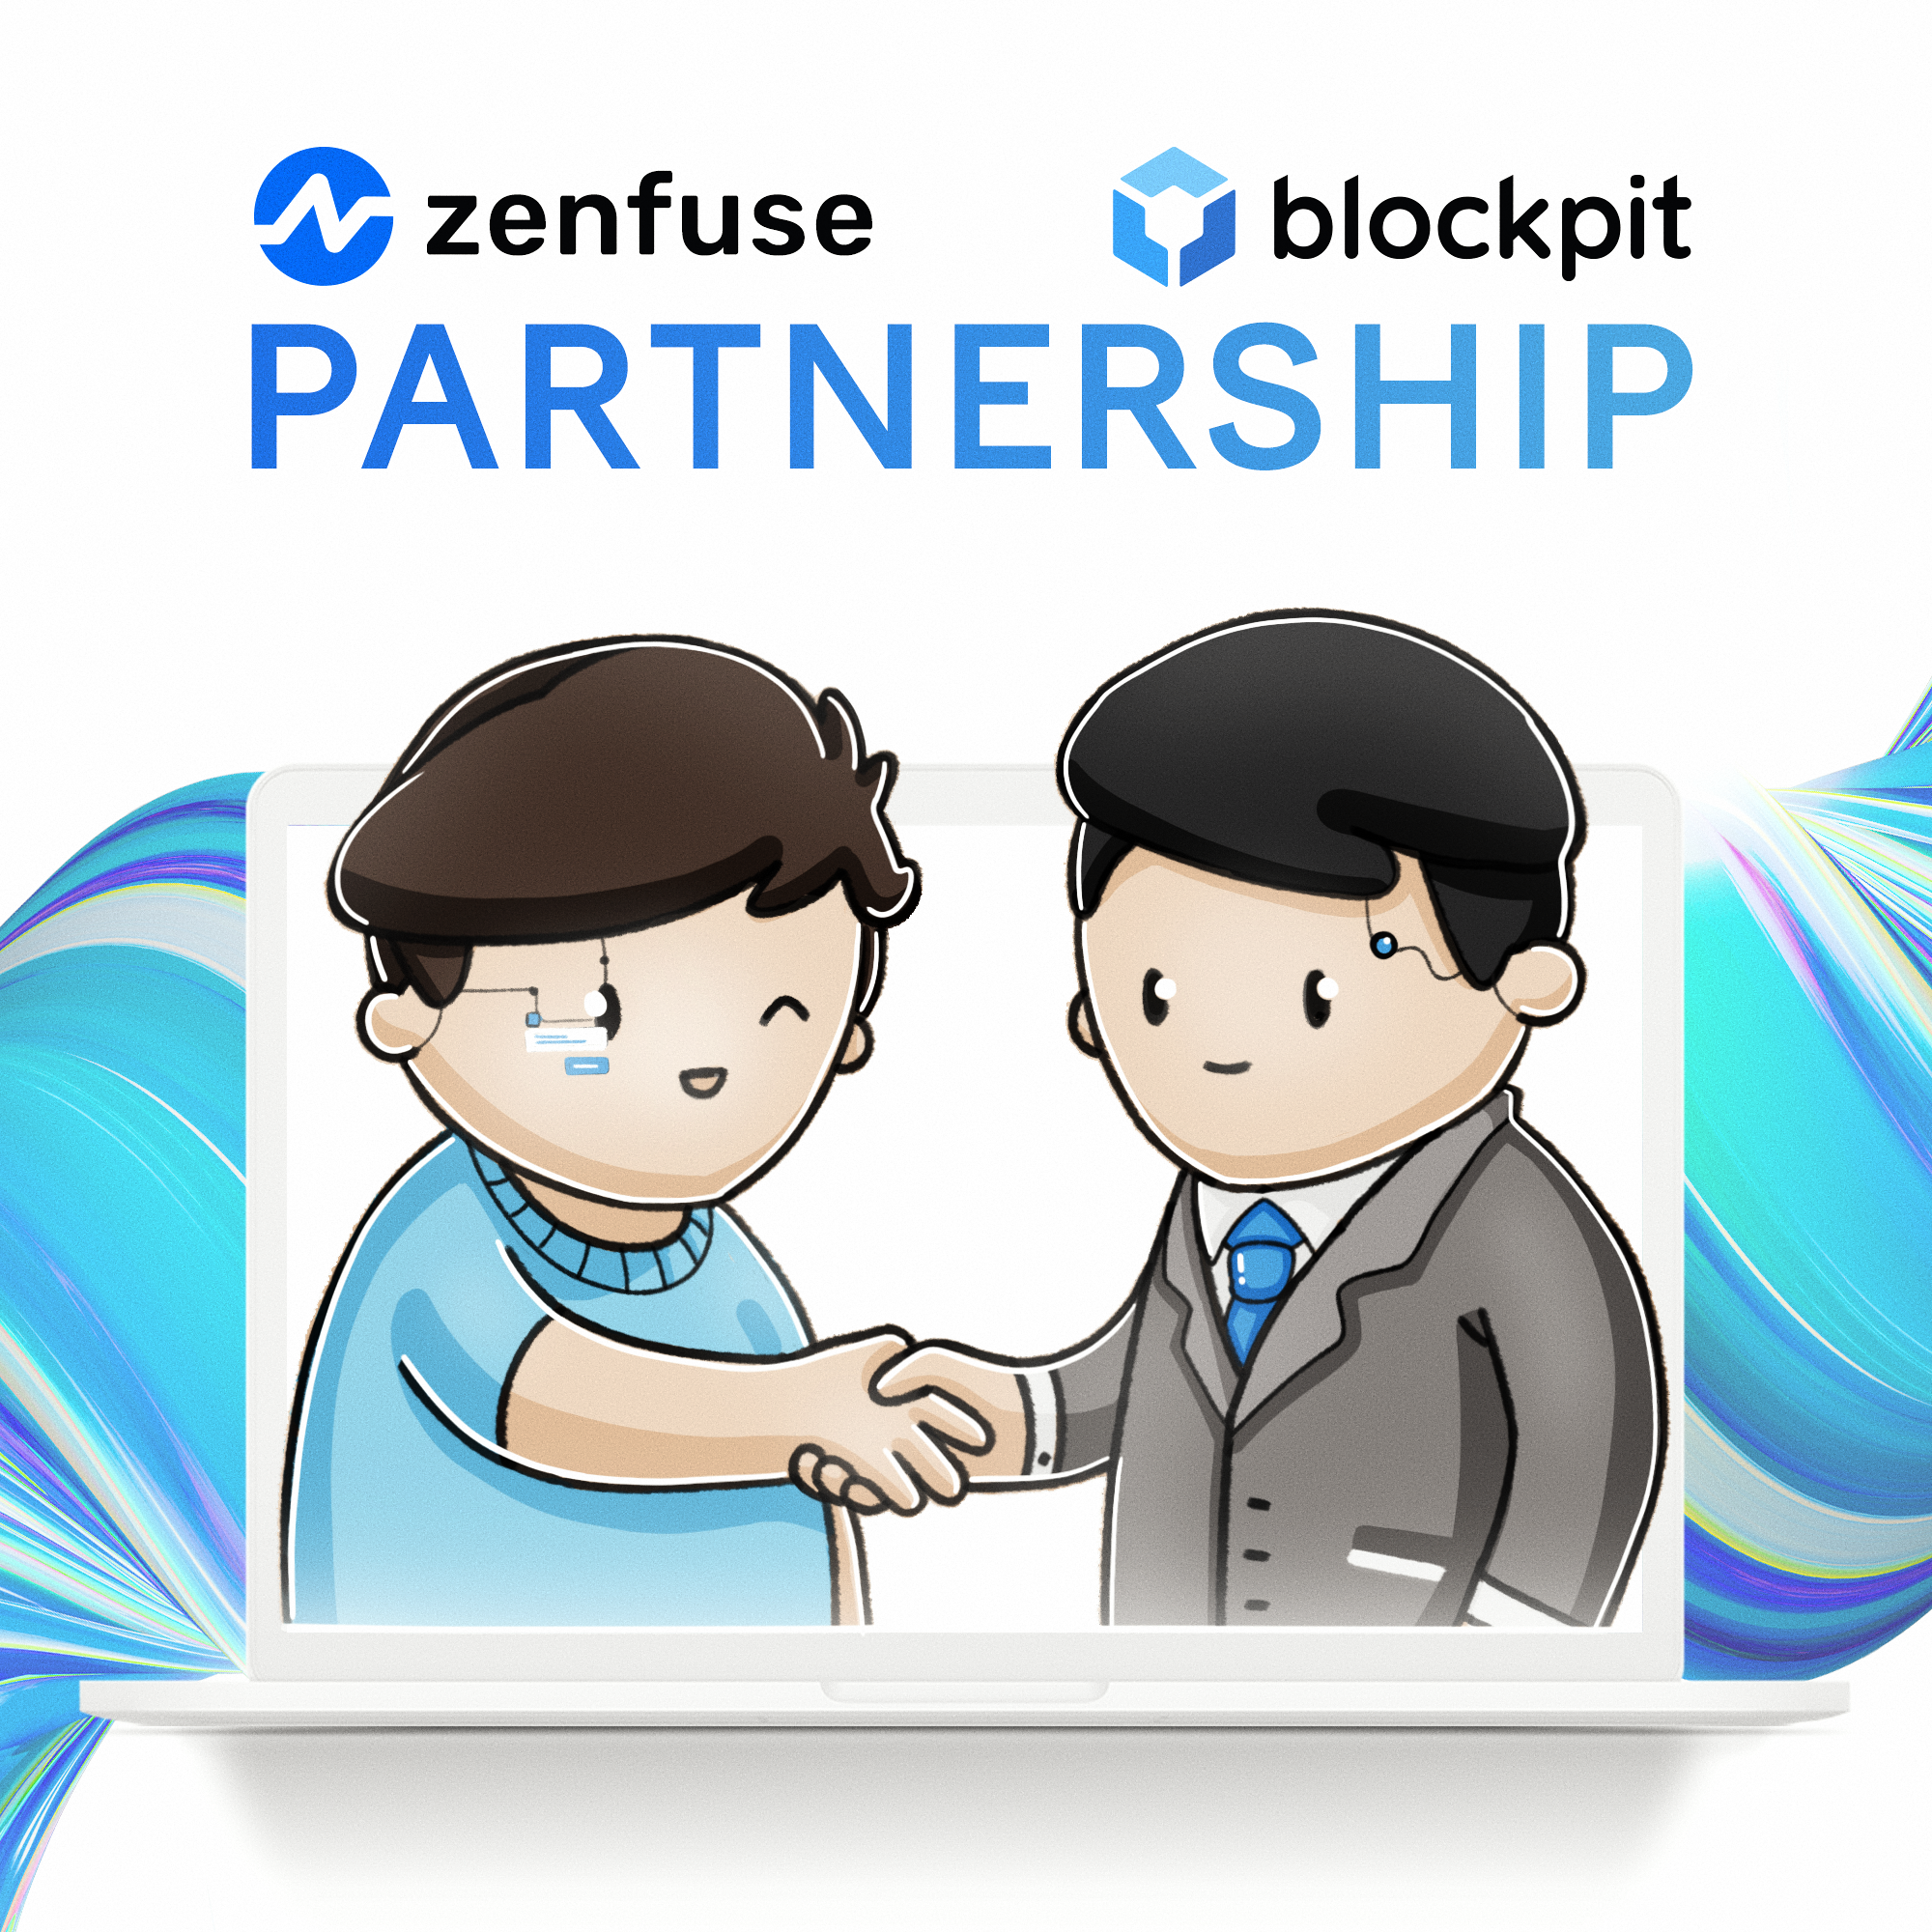 Blockpit & Zenfuse Partnership Announcement